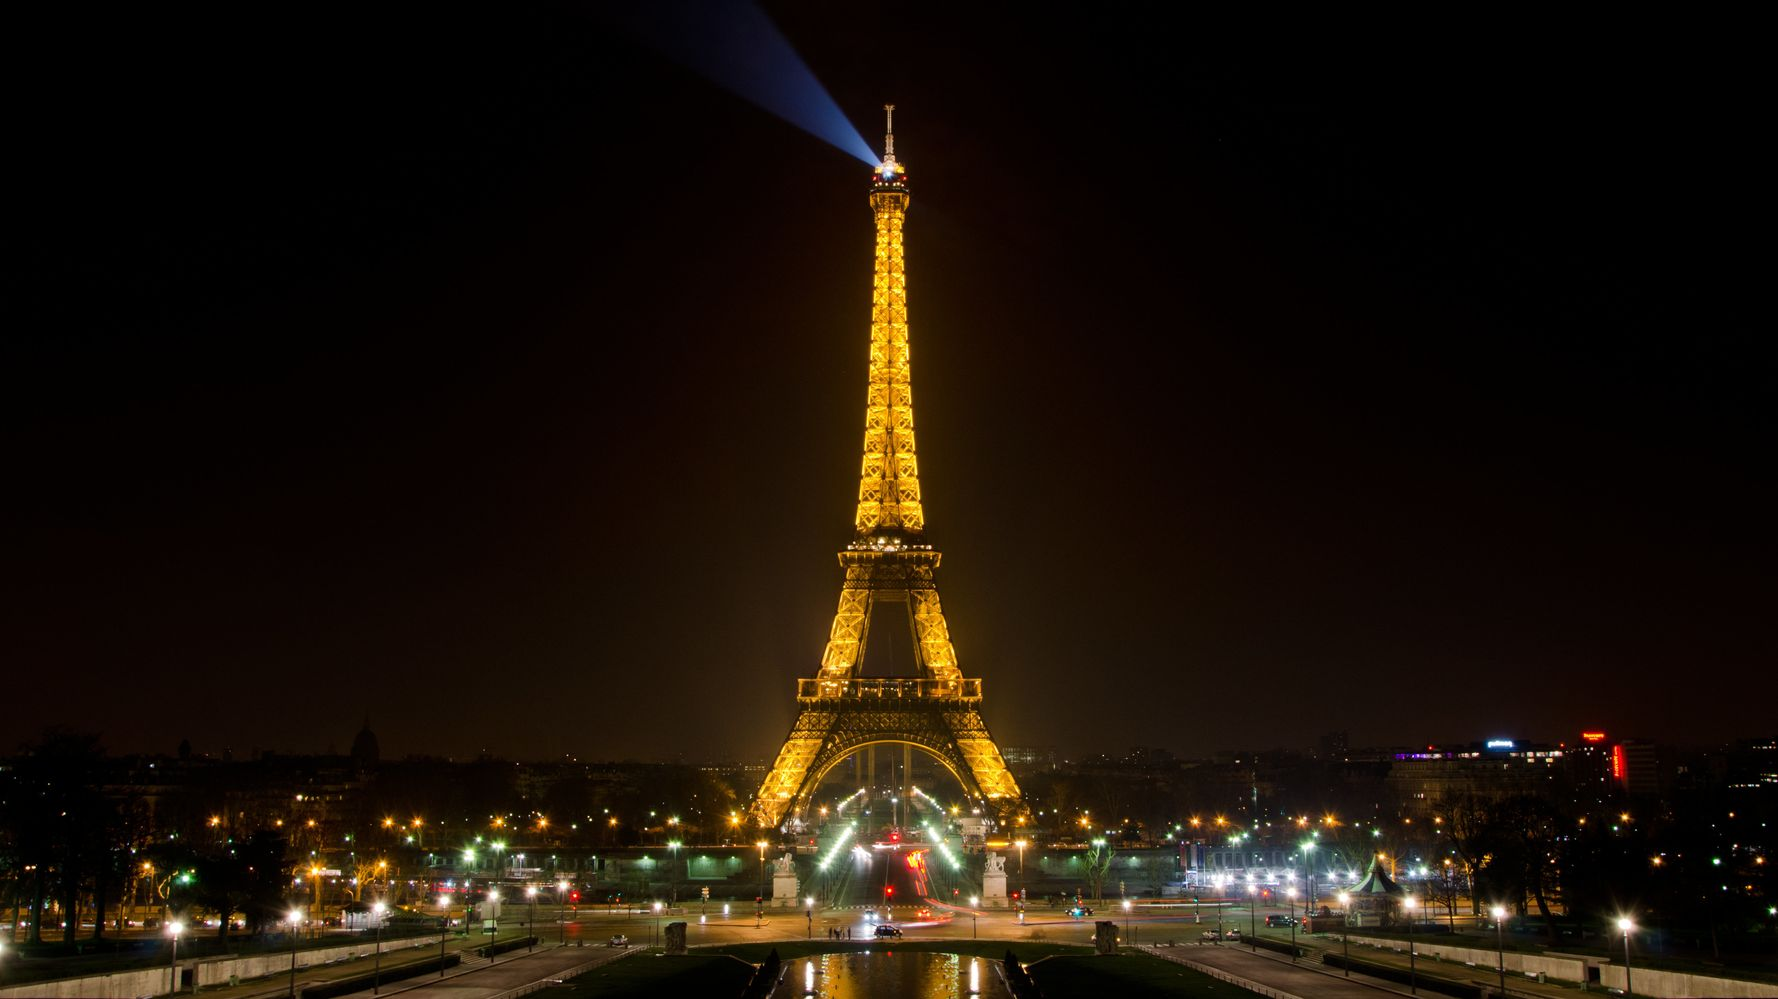 Why 1 A.M. Is The Best Time To See The Eiffel Tower